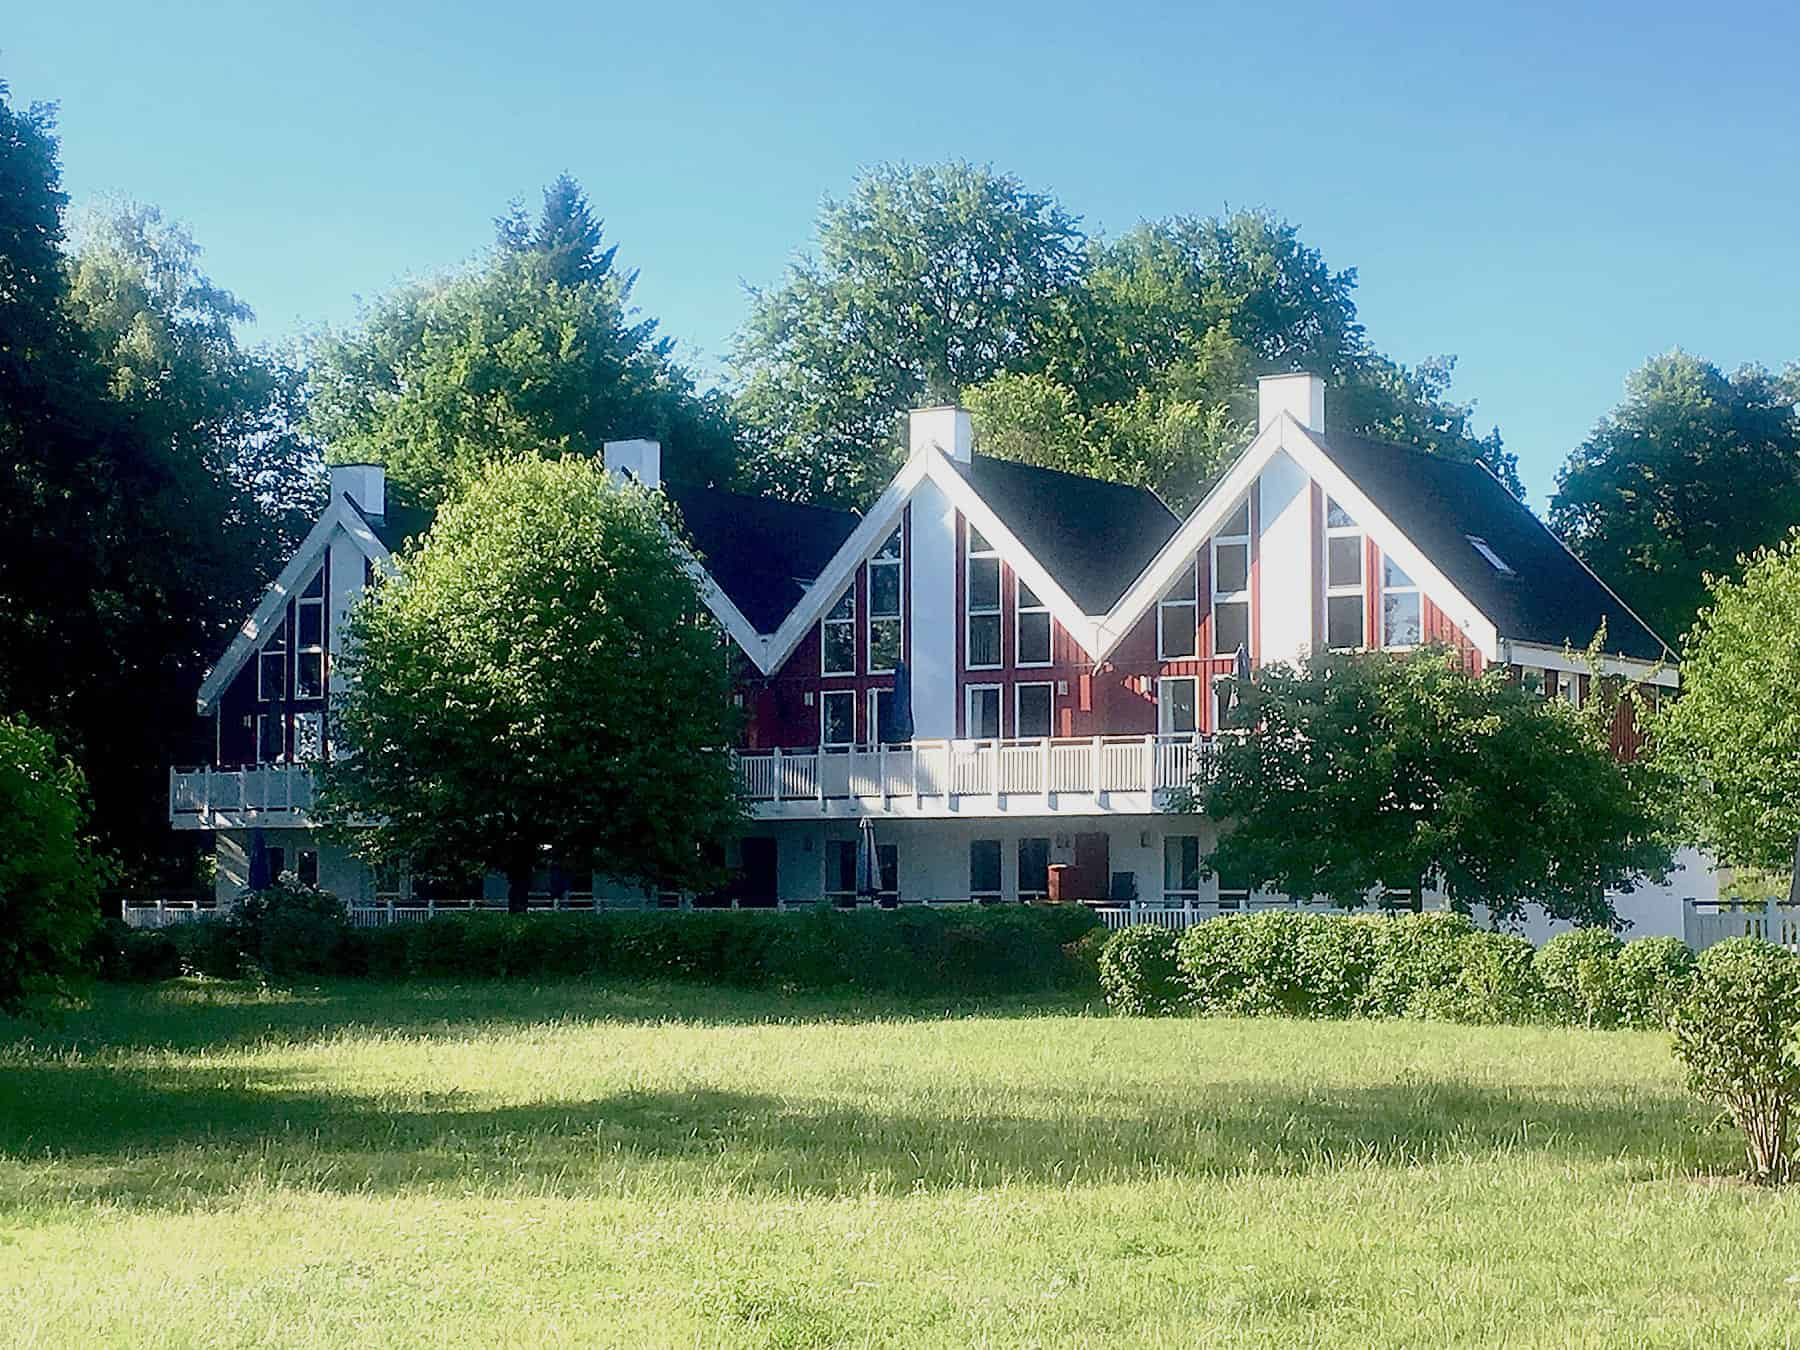 Ferienhaus Bornholm in Bad Saarow